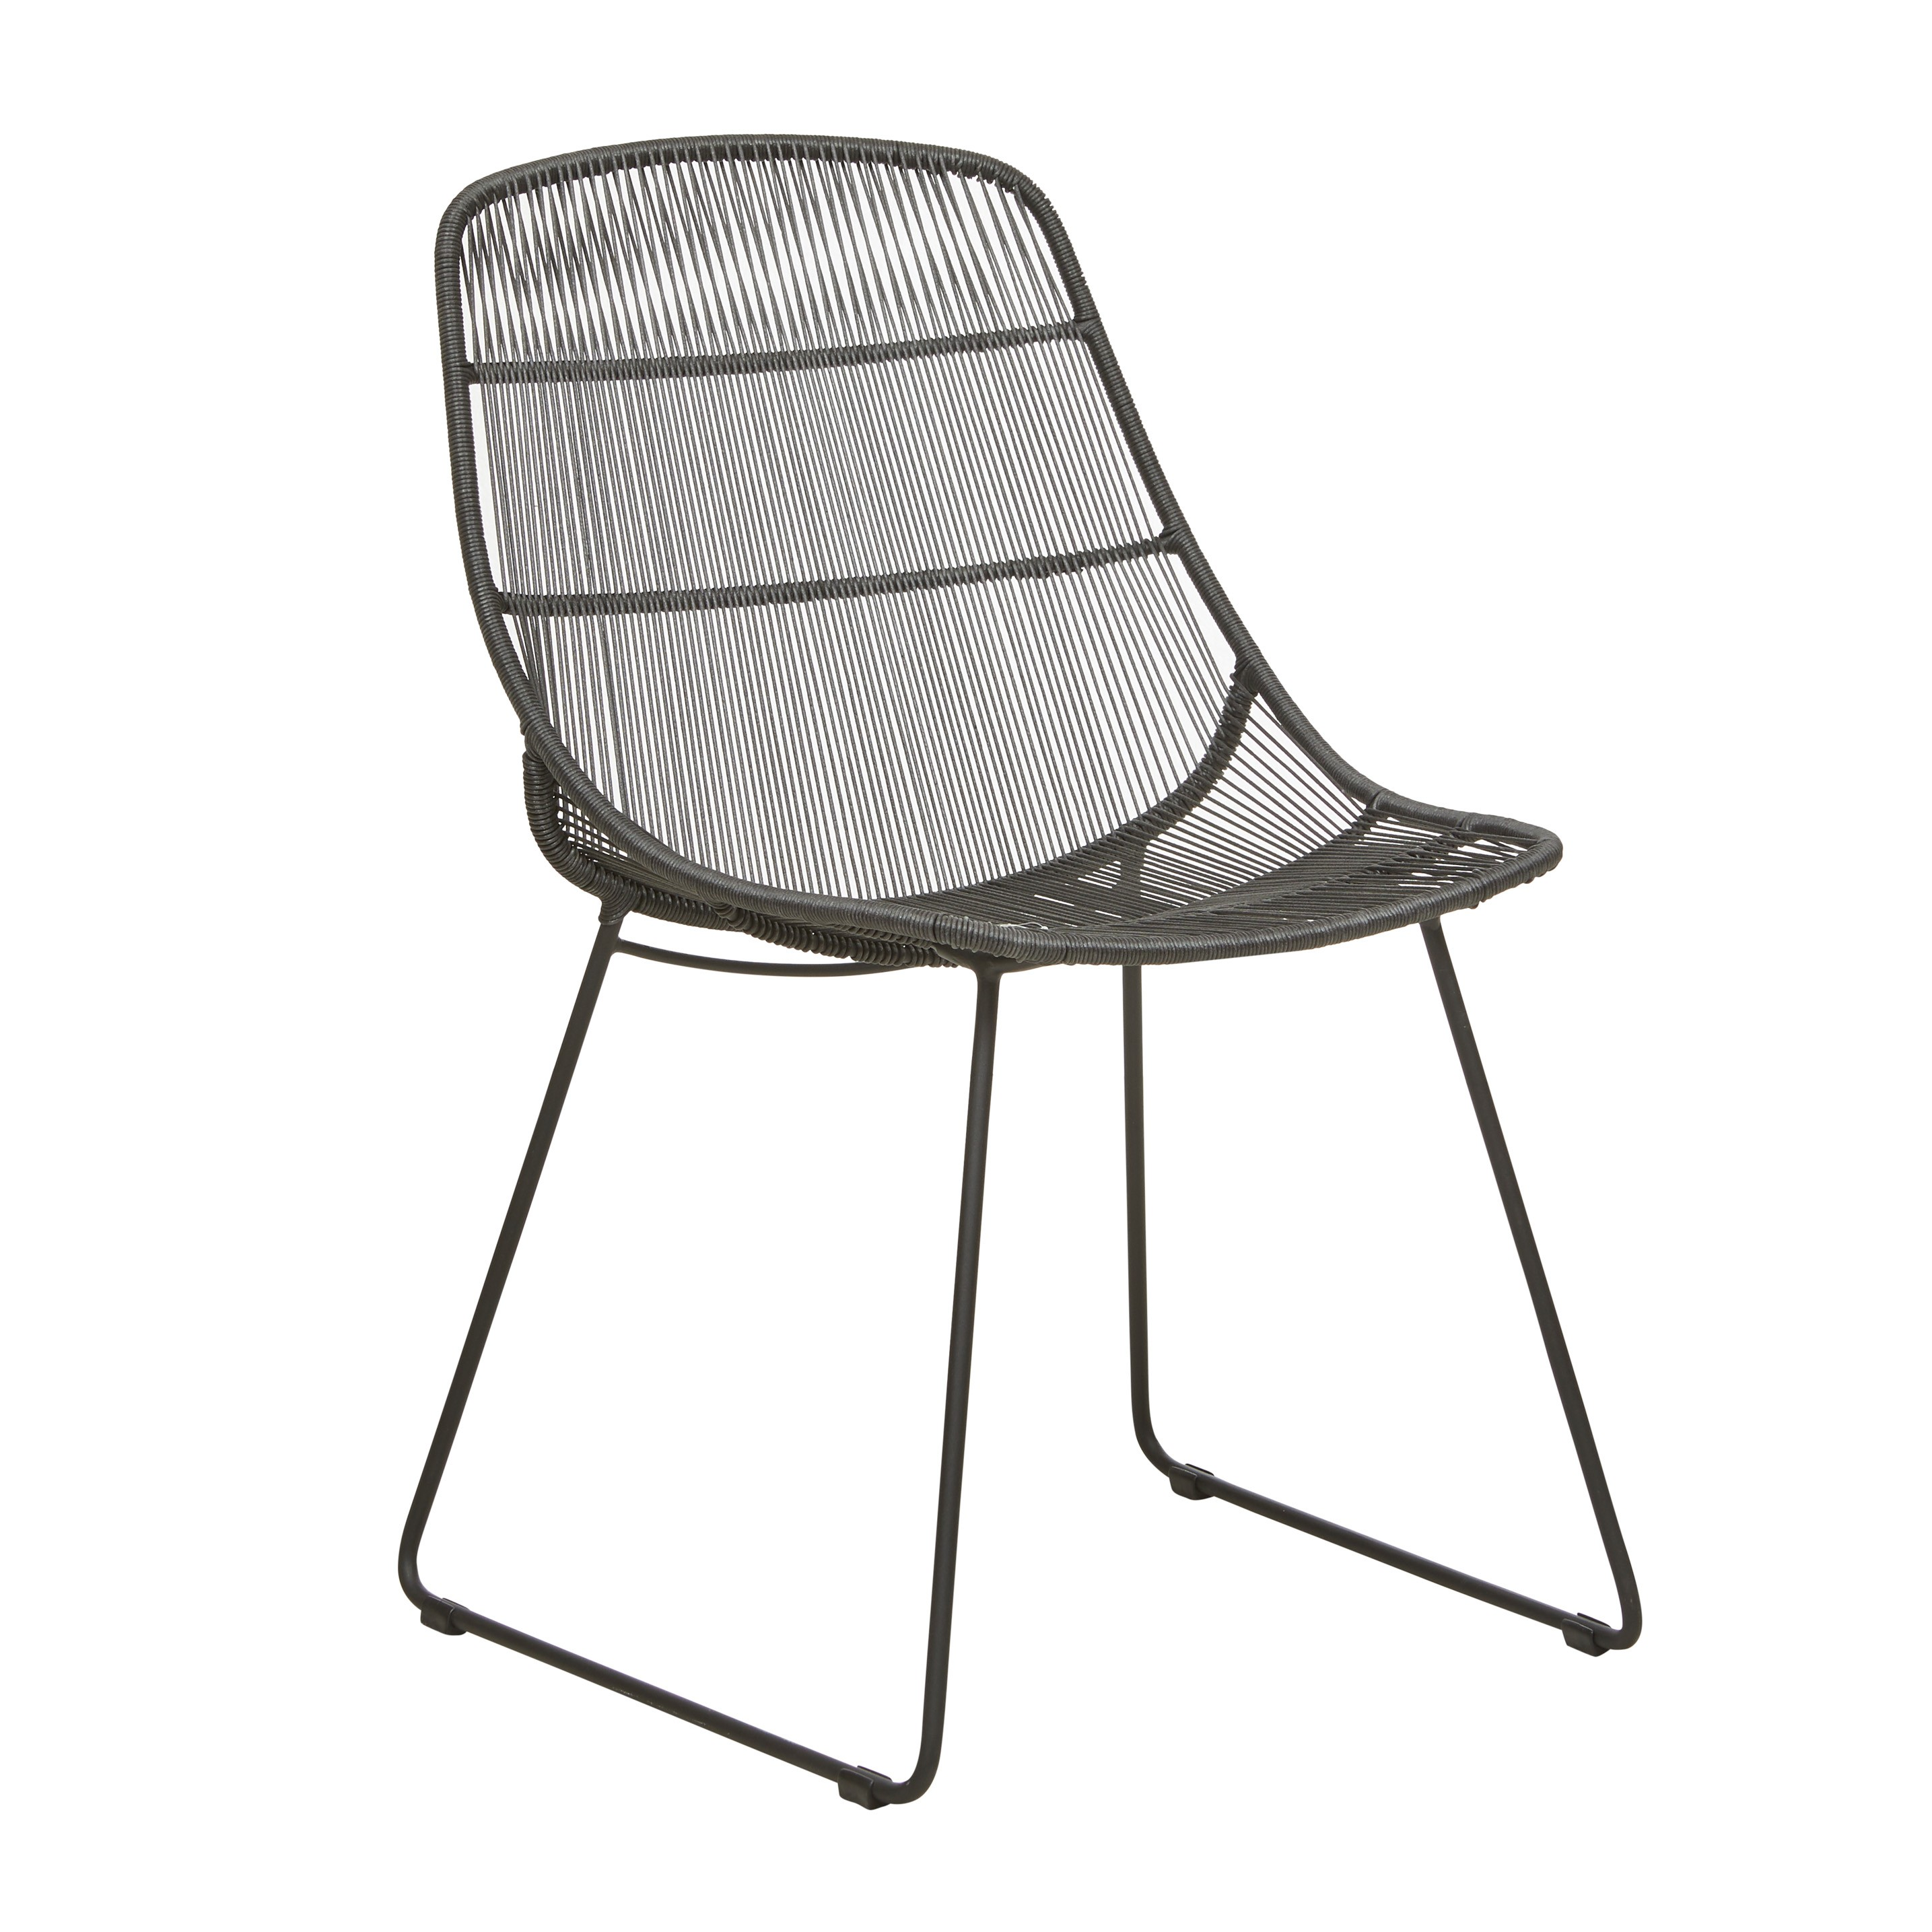 Furniture Hero-Images Dining-Chairs-Benches-and-Stools granada-scoop-03